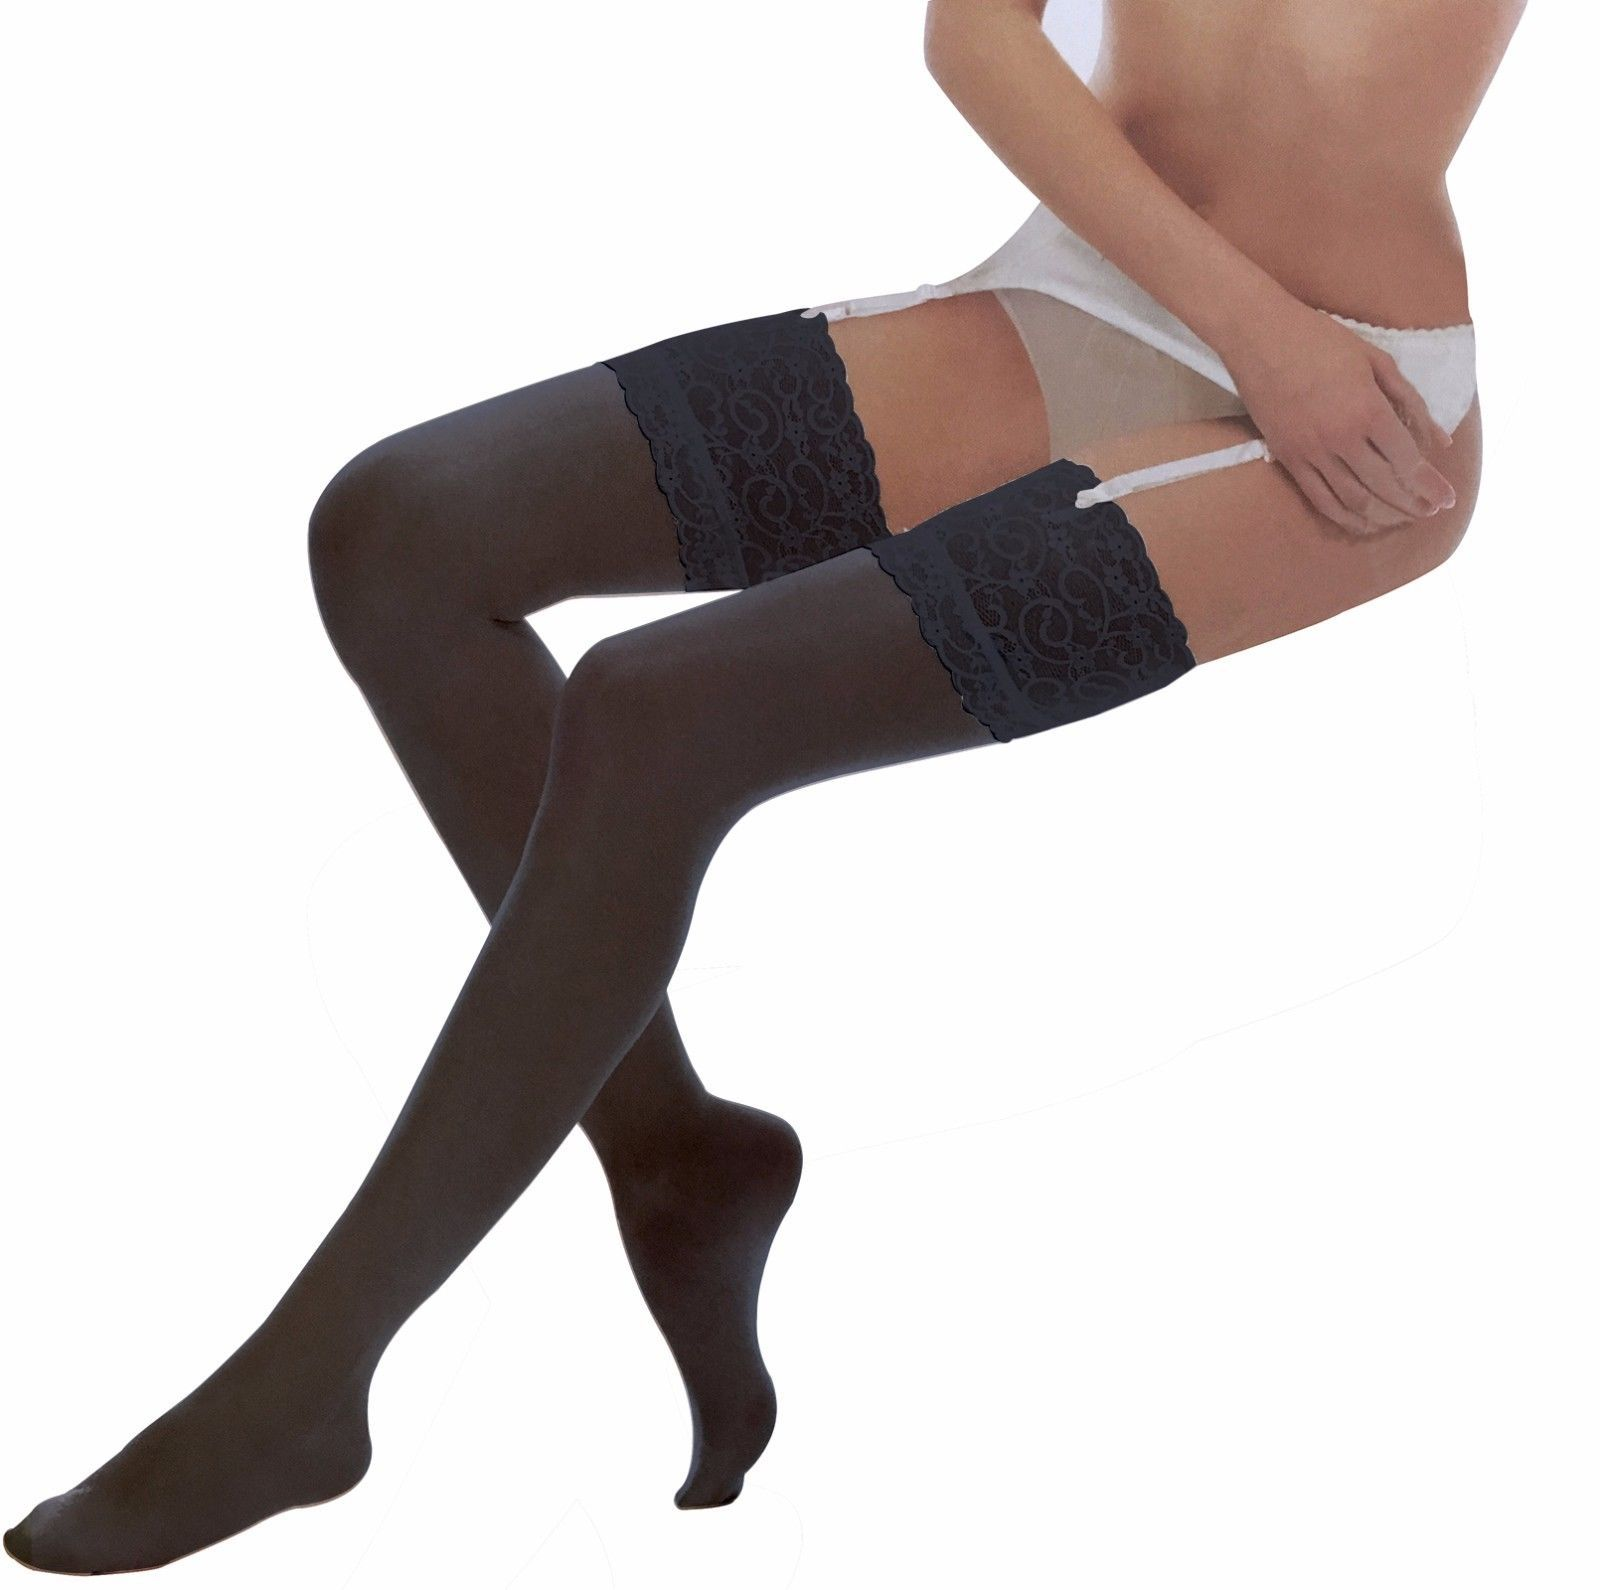 Ladies Sexy Ultra Sheer 10 Den Thigh High Over the Knee Deep Lace Top Stockings